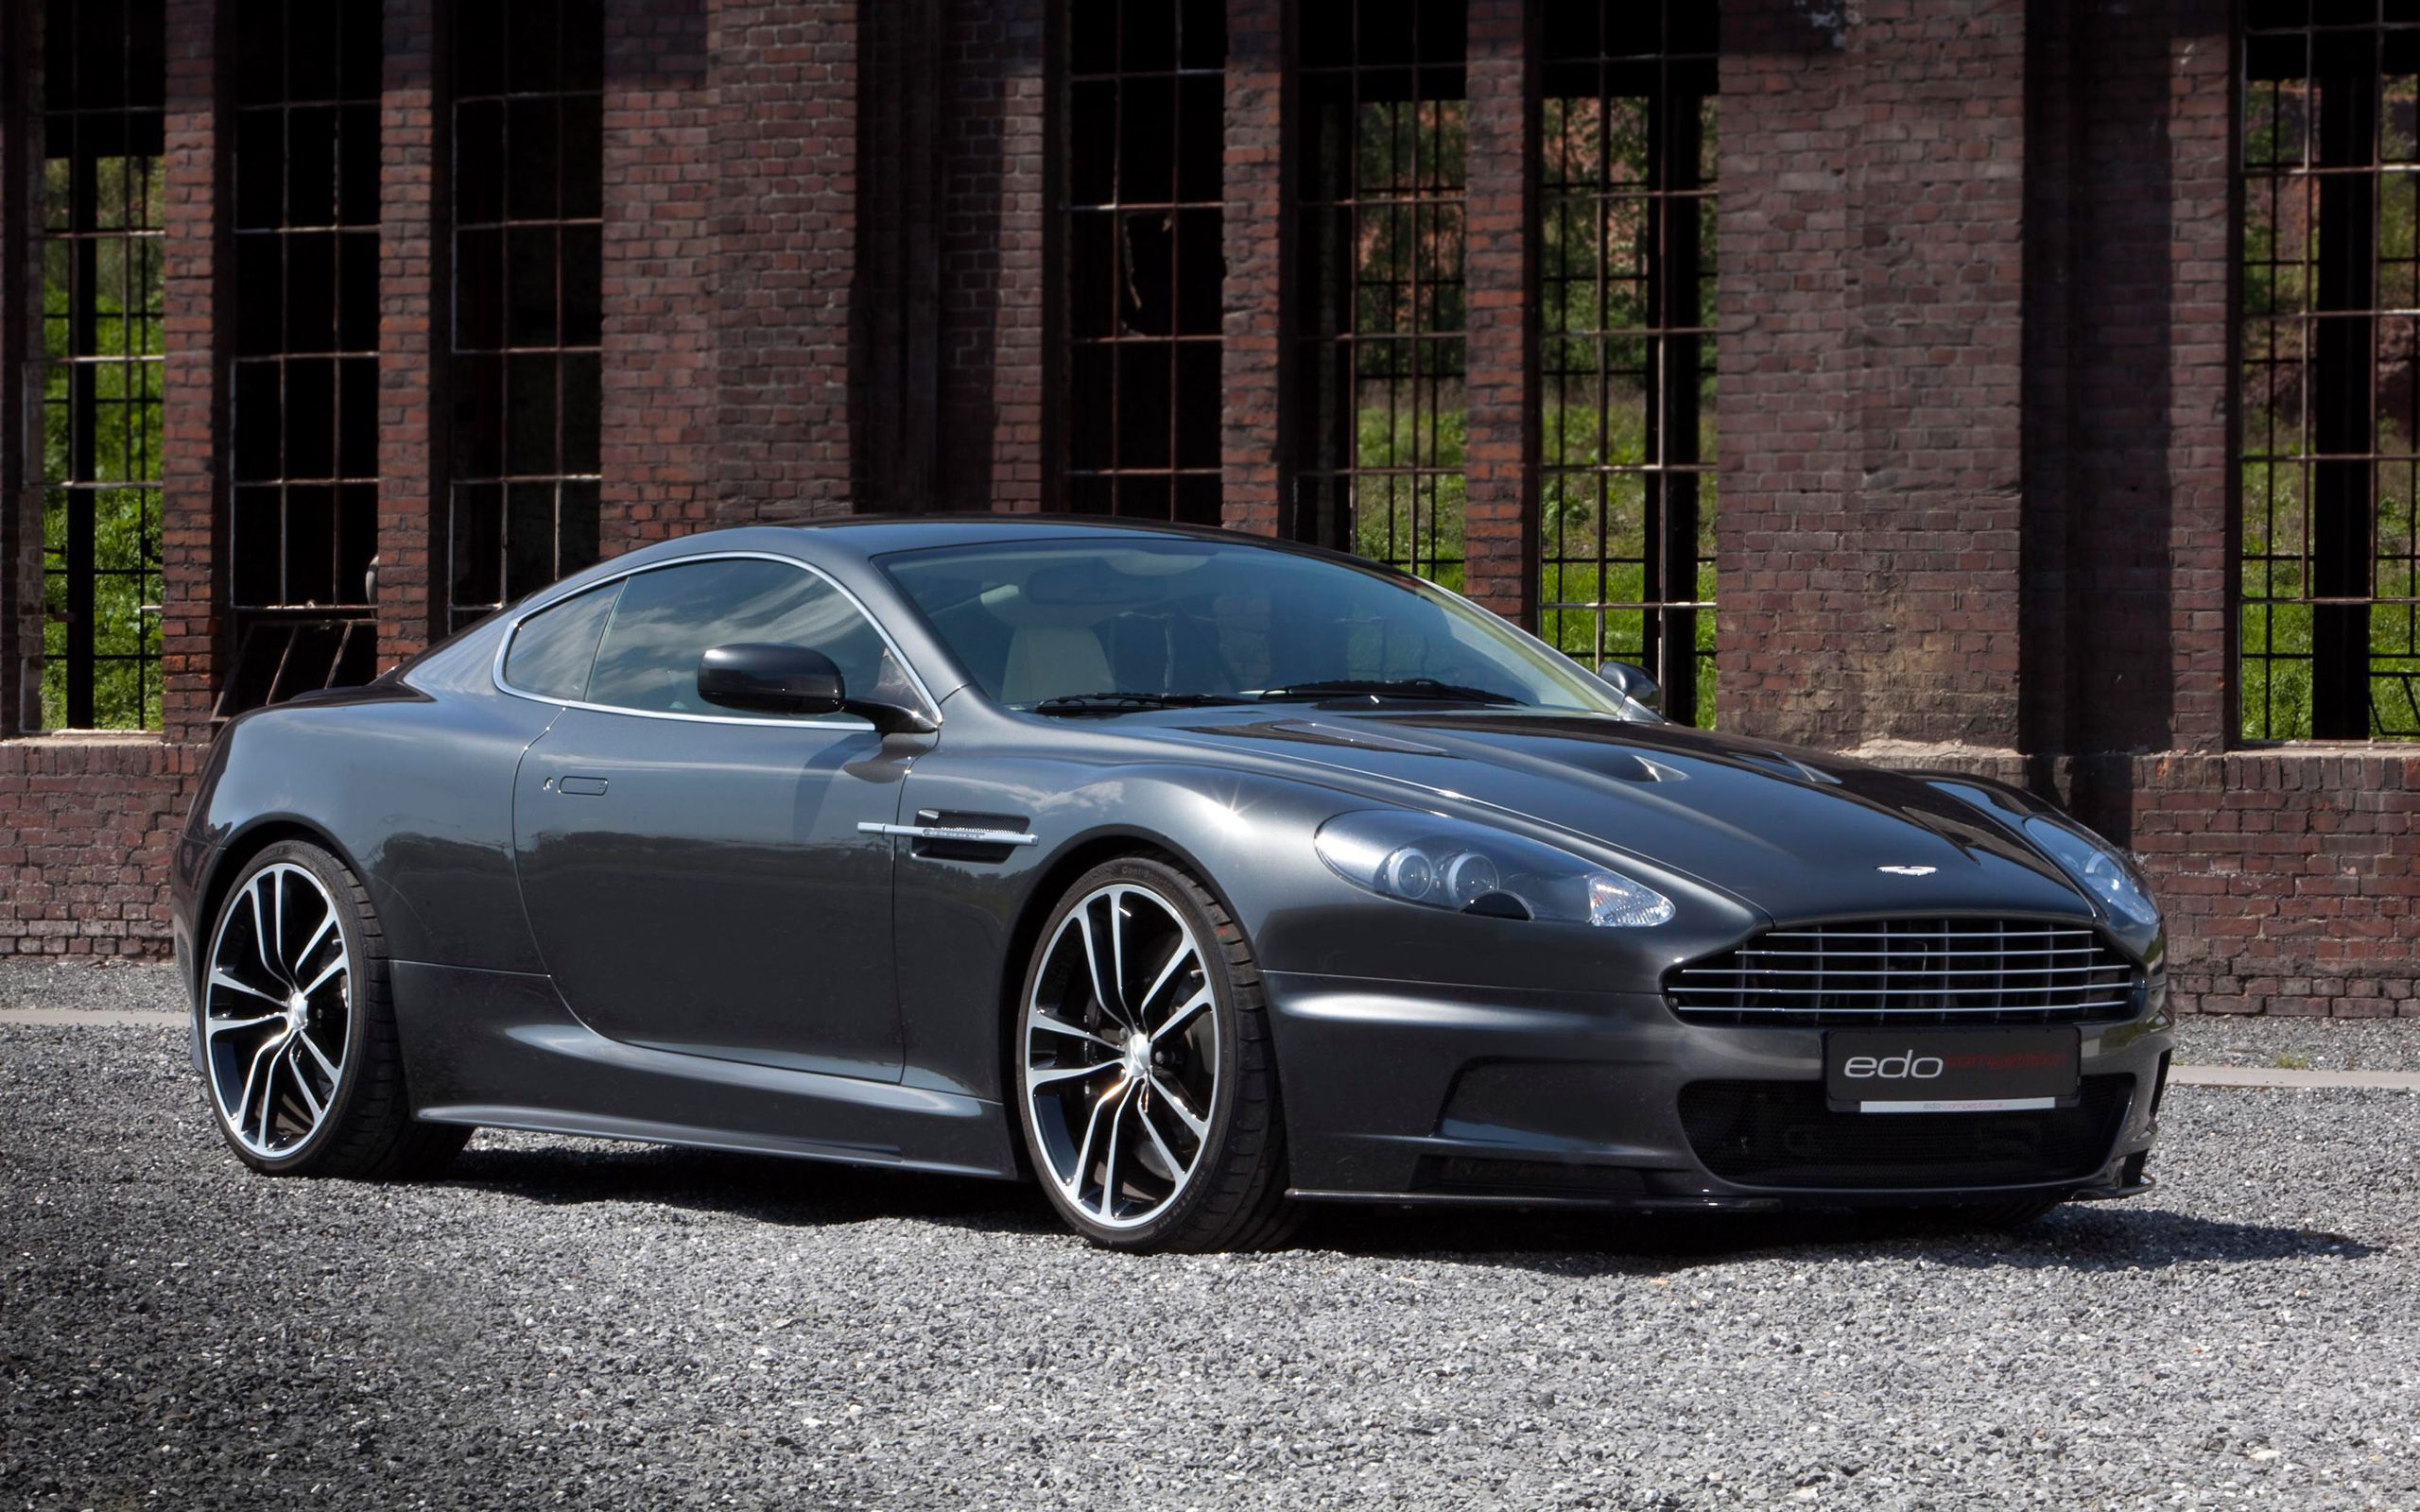 Aston Martin Db9 High Definition Wallpapers